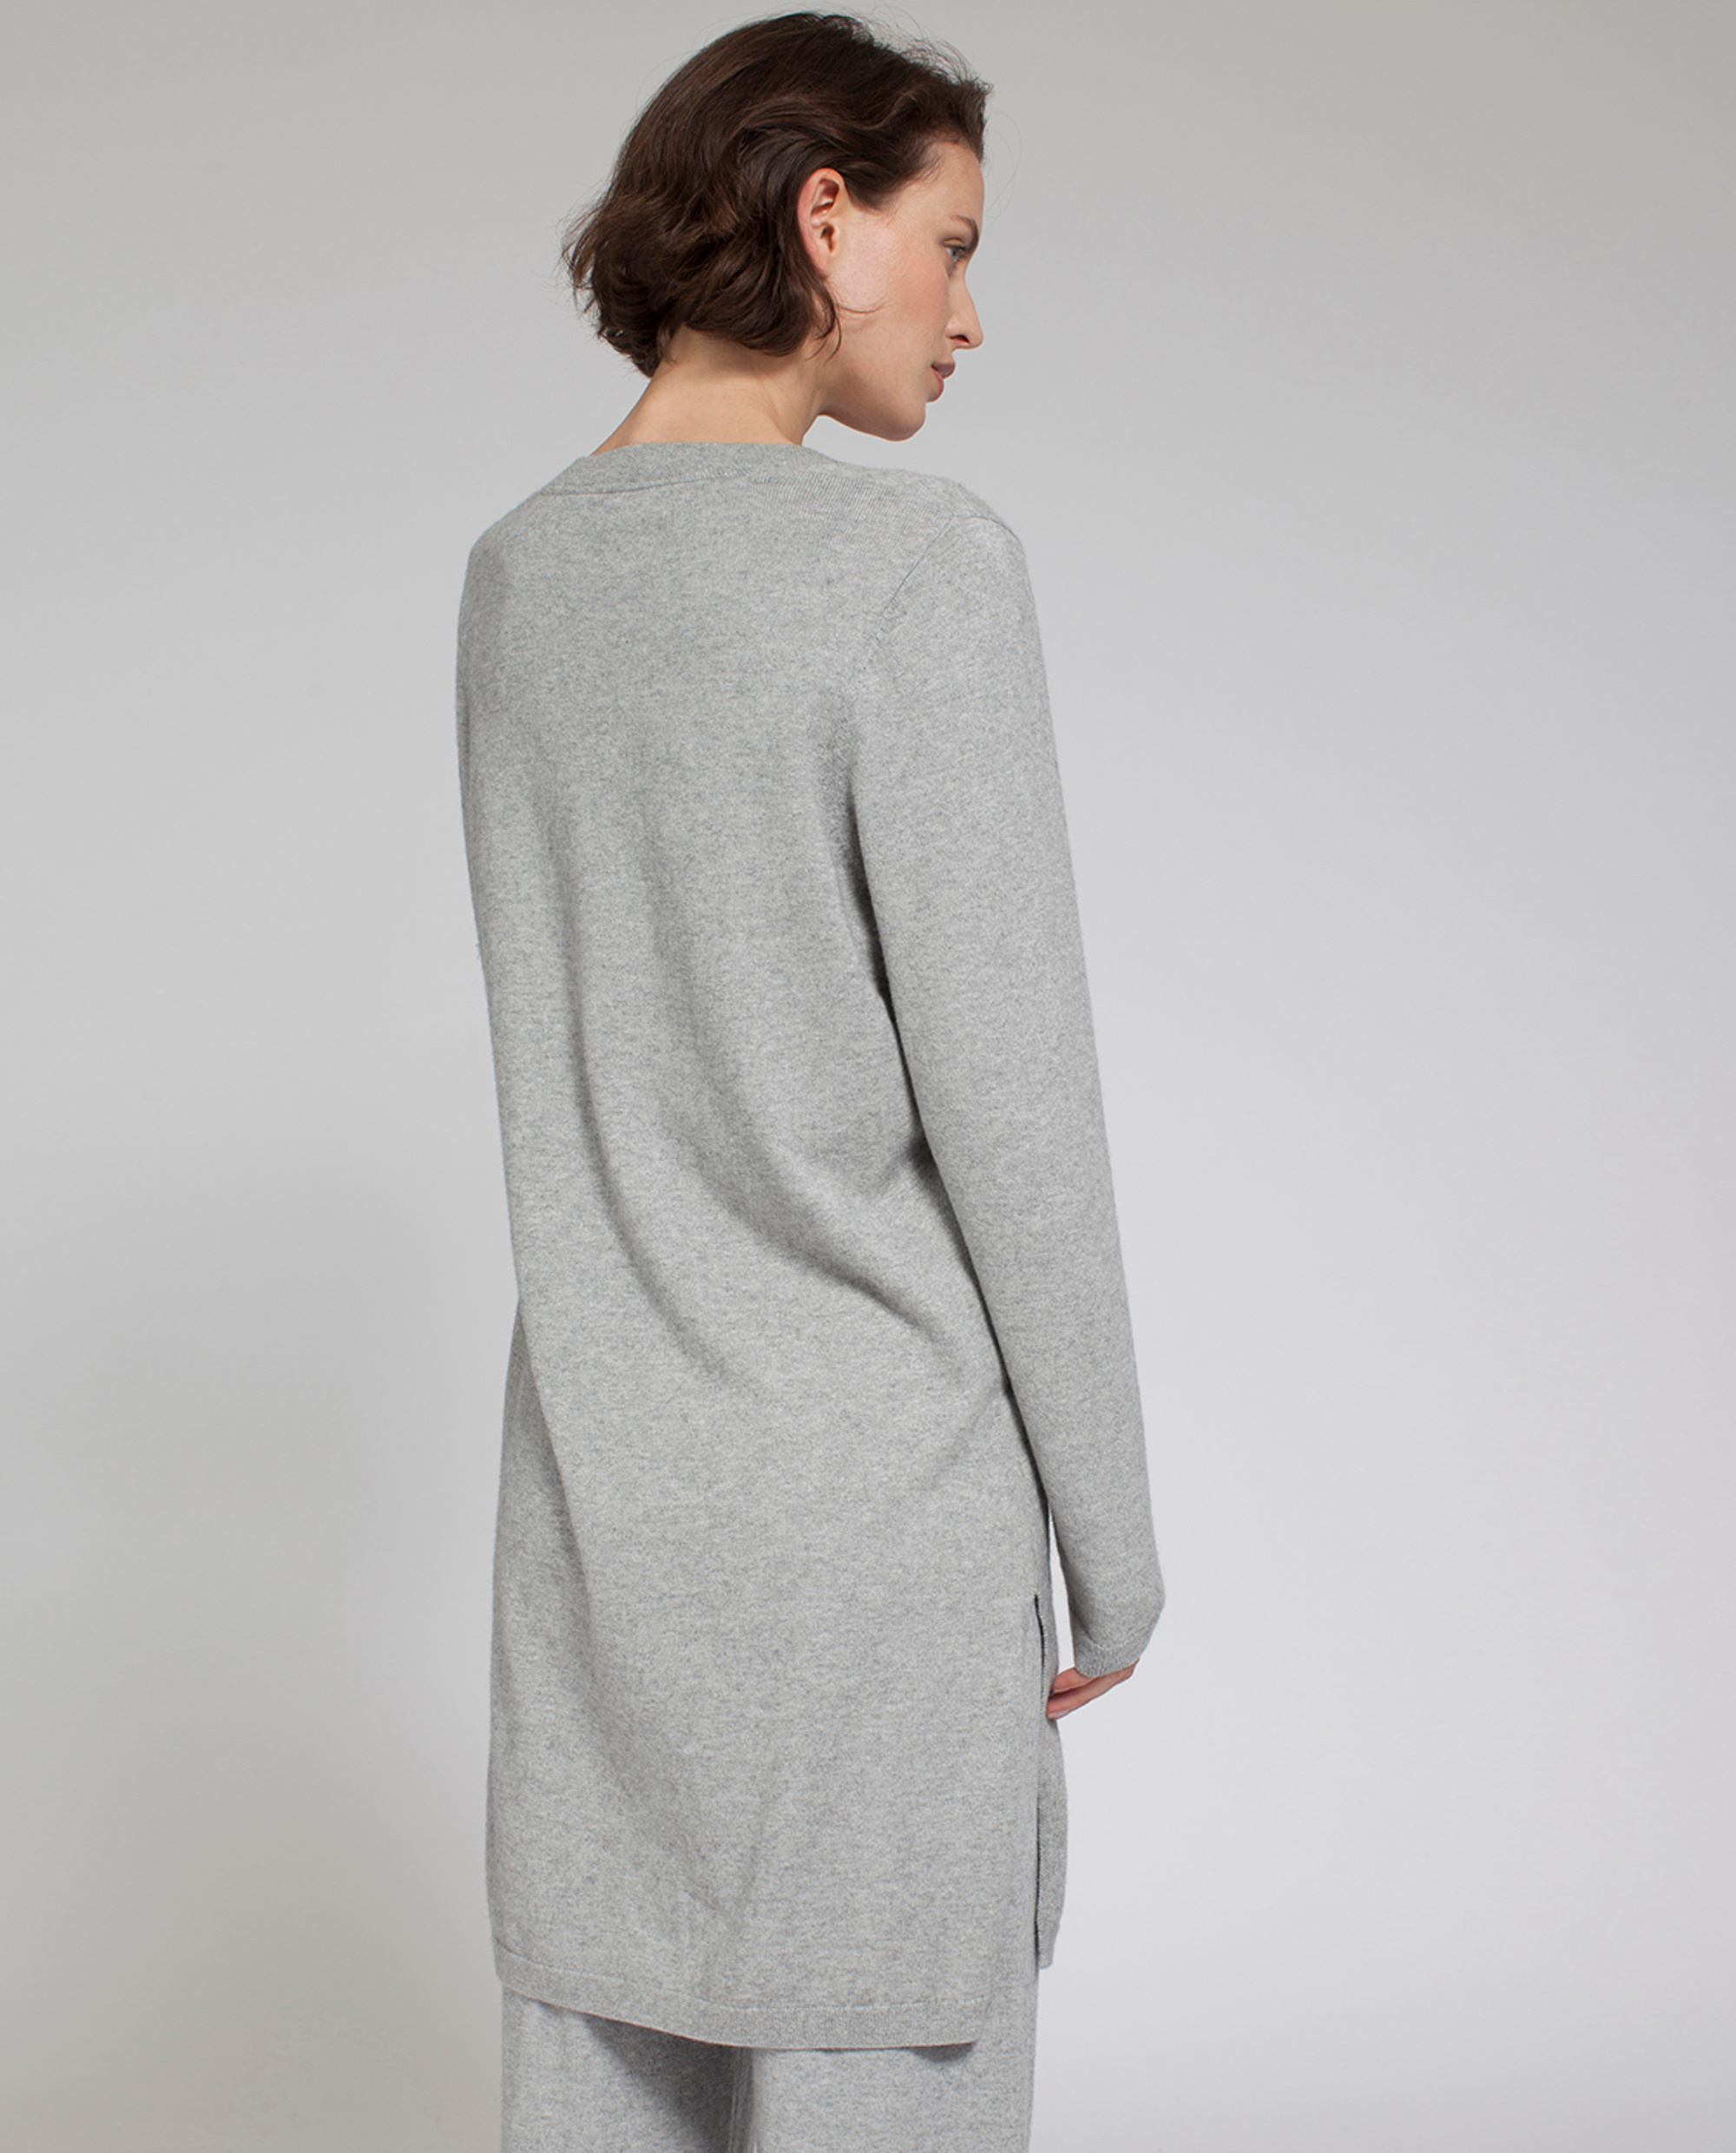 Eli Knit Tunic, Light Warm Gray